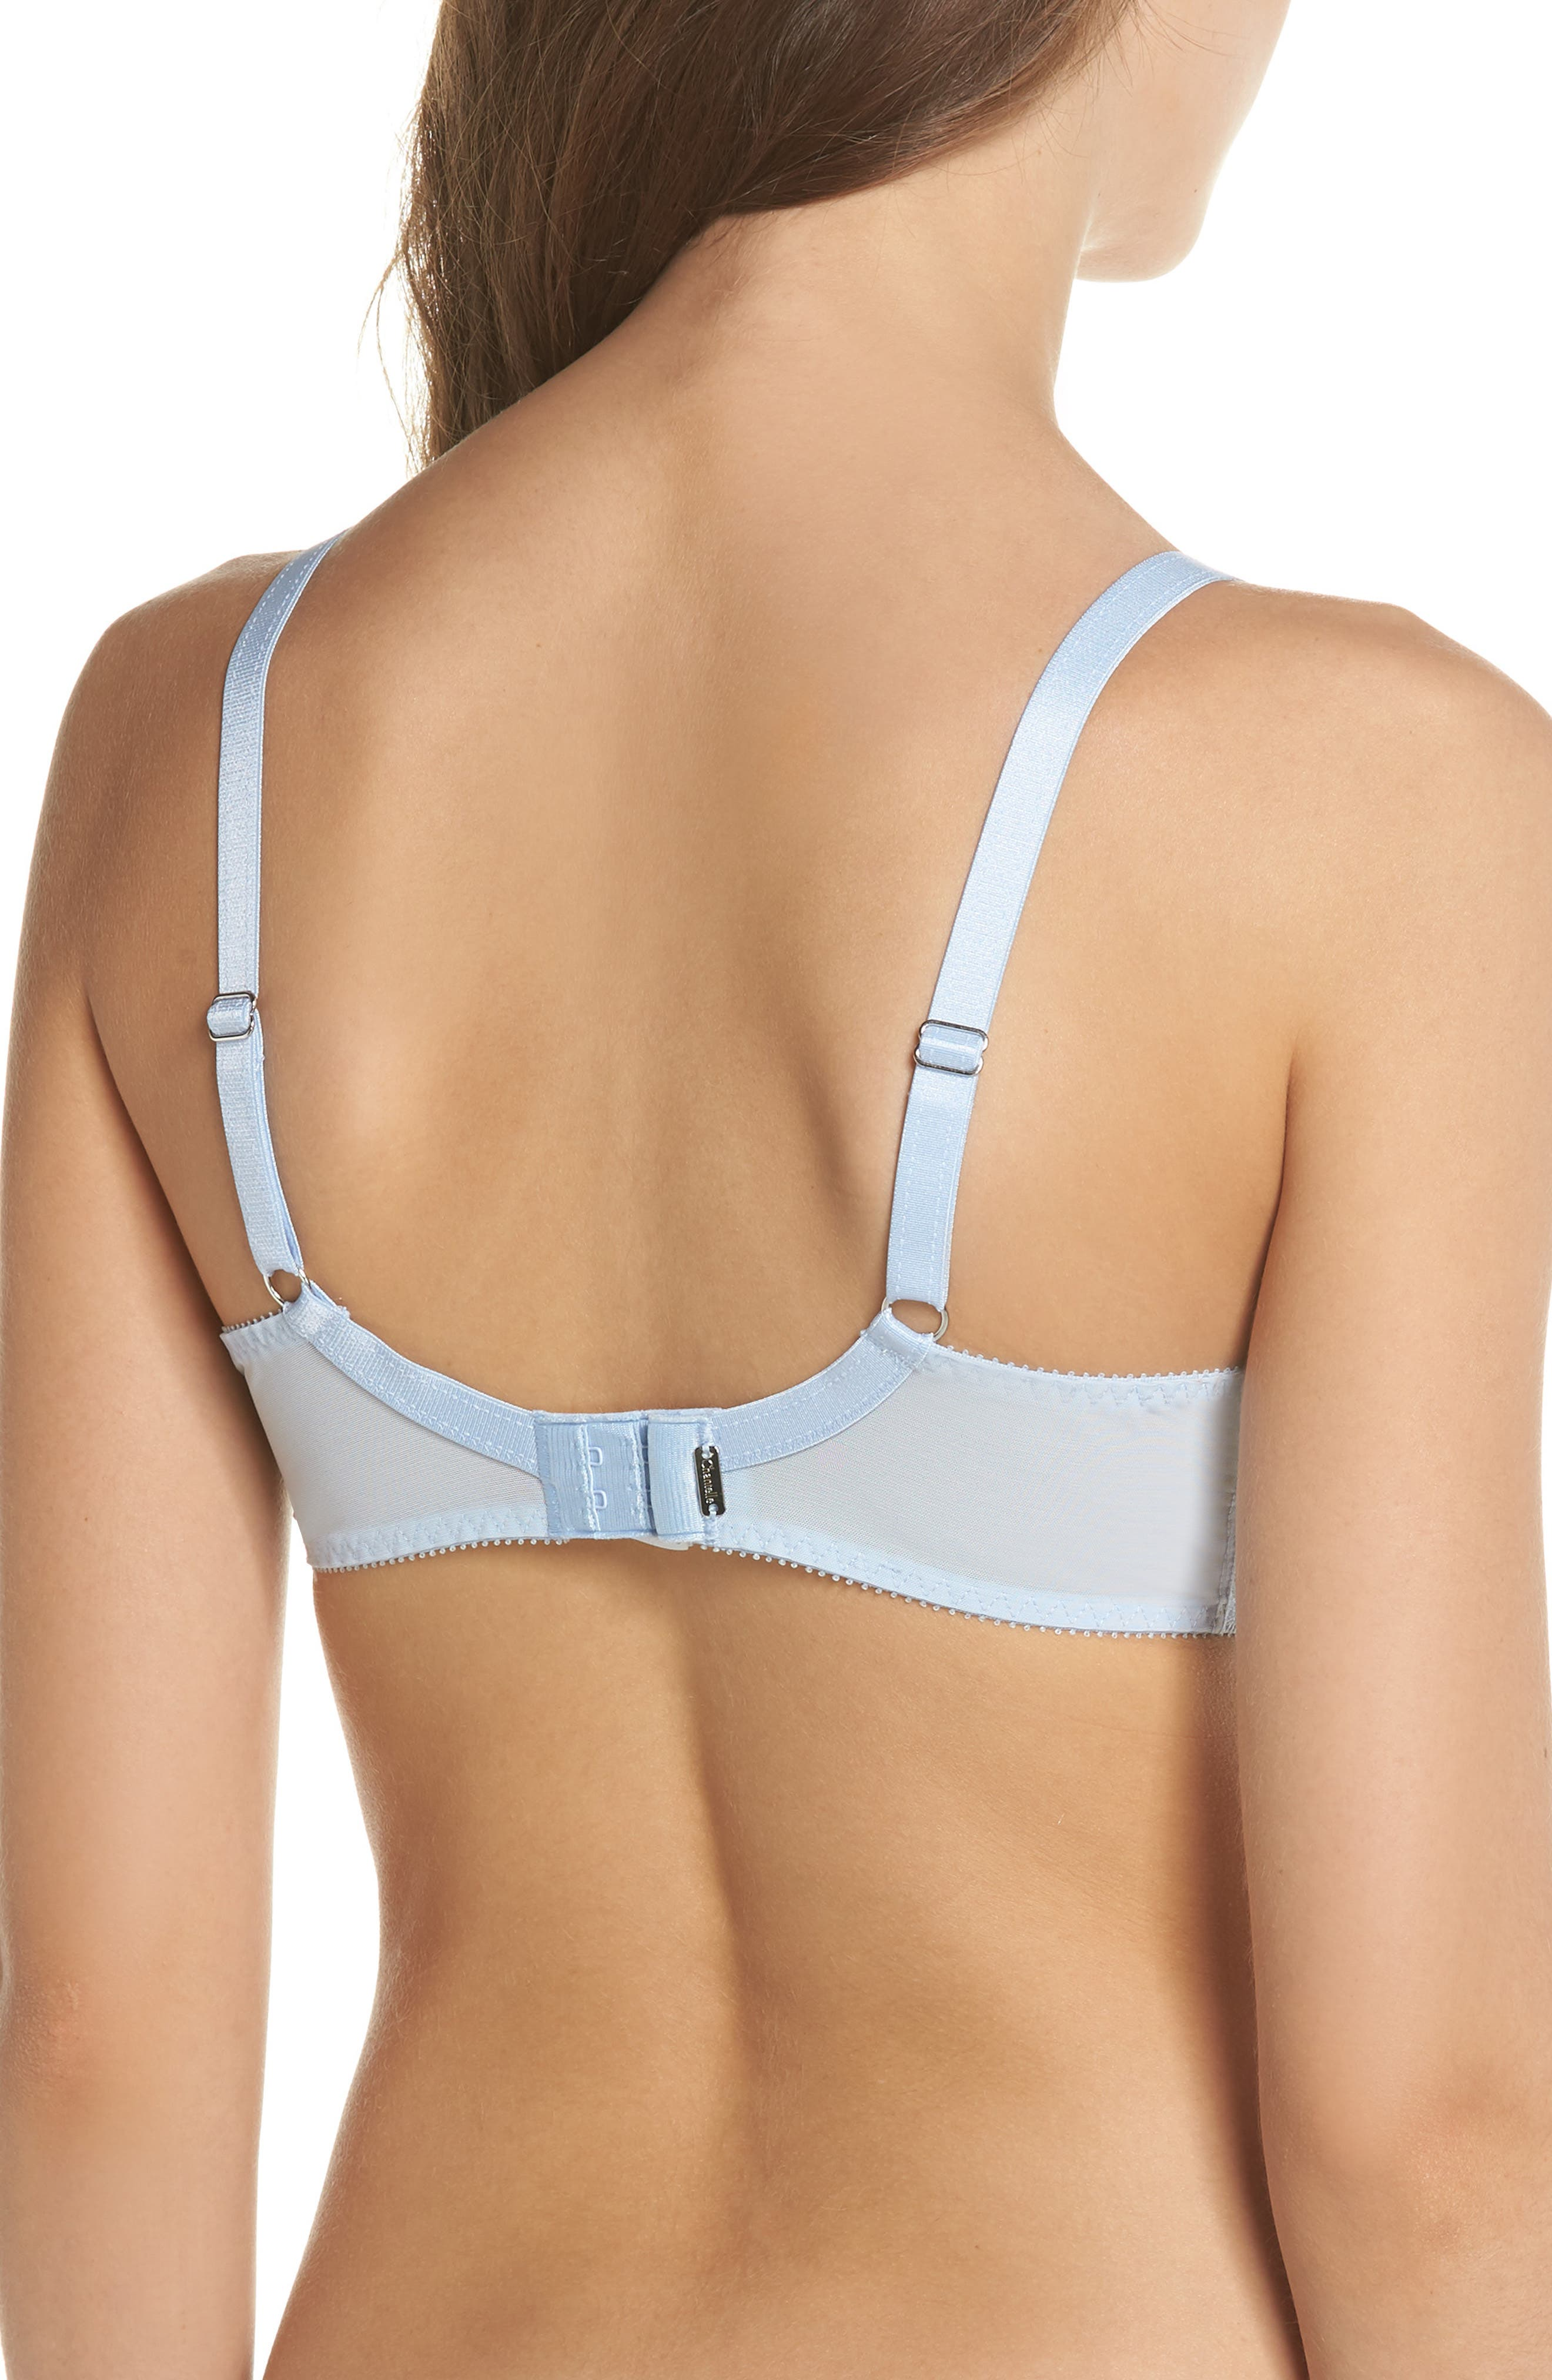 'Rive Gauche' Underwire Bra,                             Alternate thumbnail 2, color,                             Sky Blue